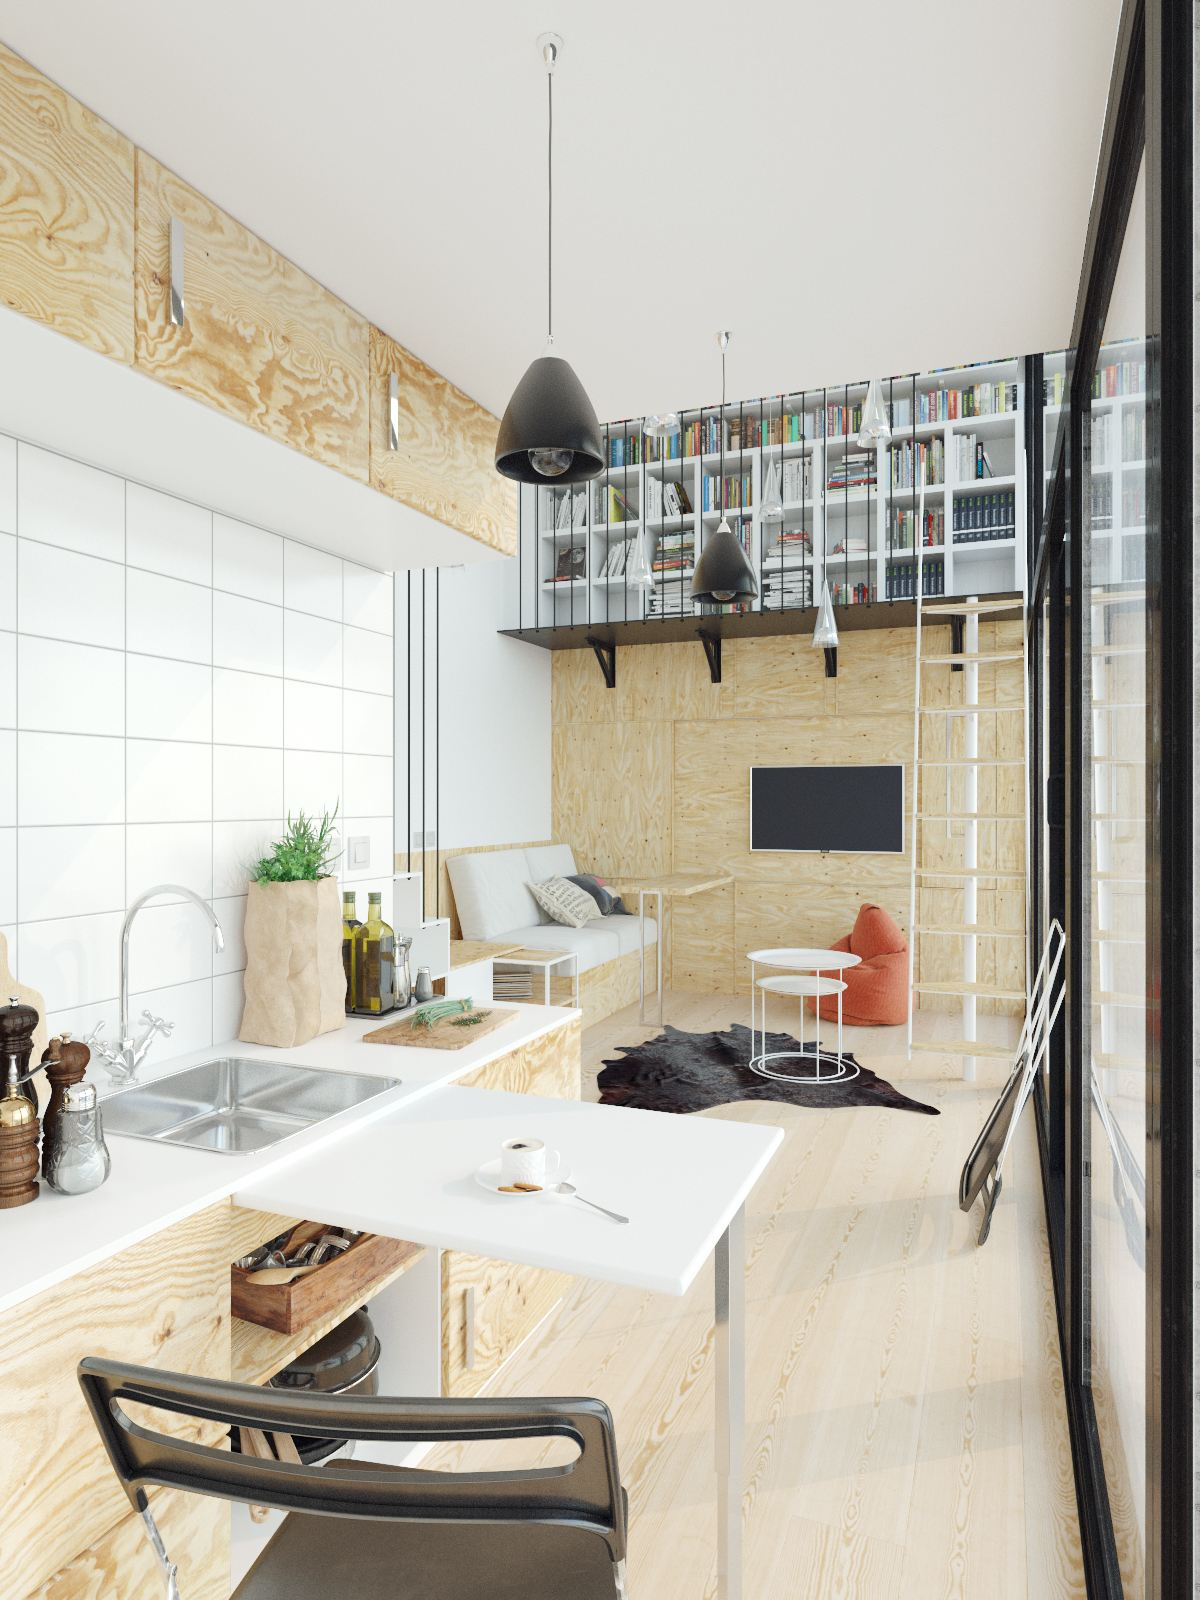 Homes That Use Lofts To Gain More Floor Space